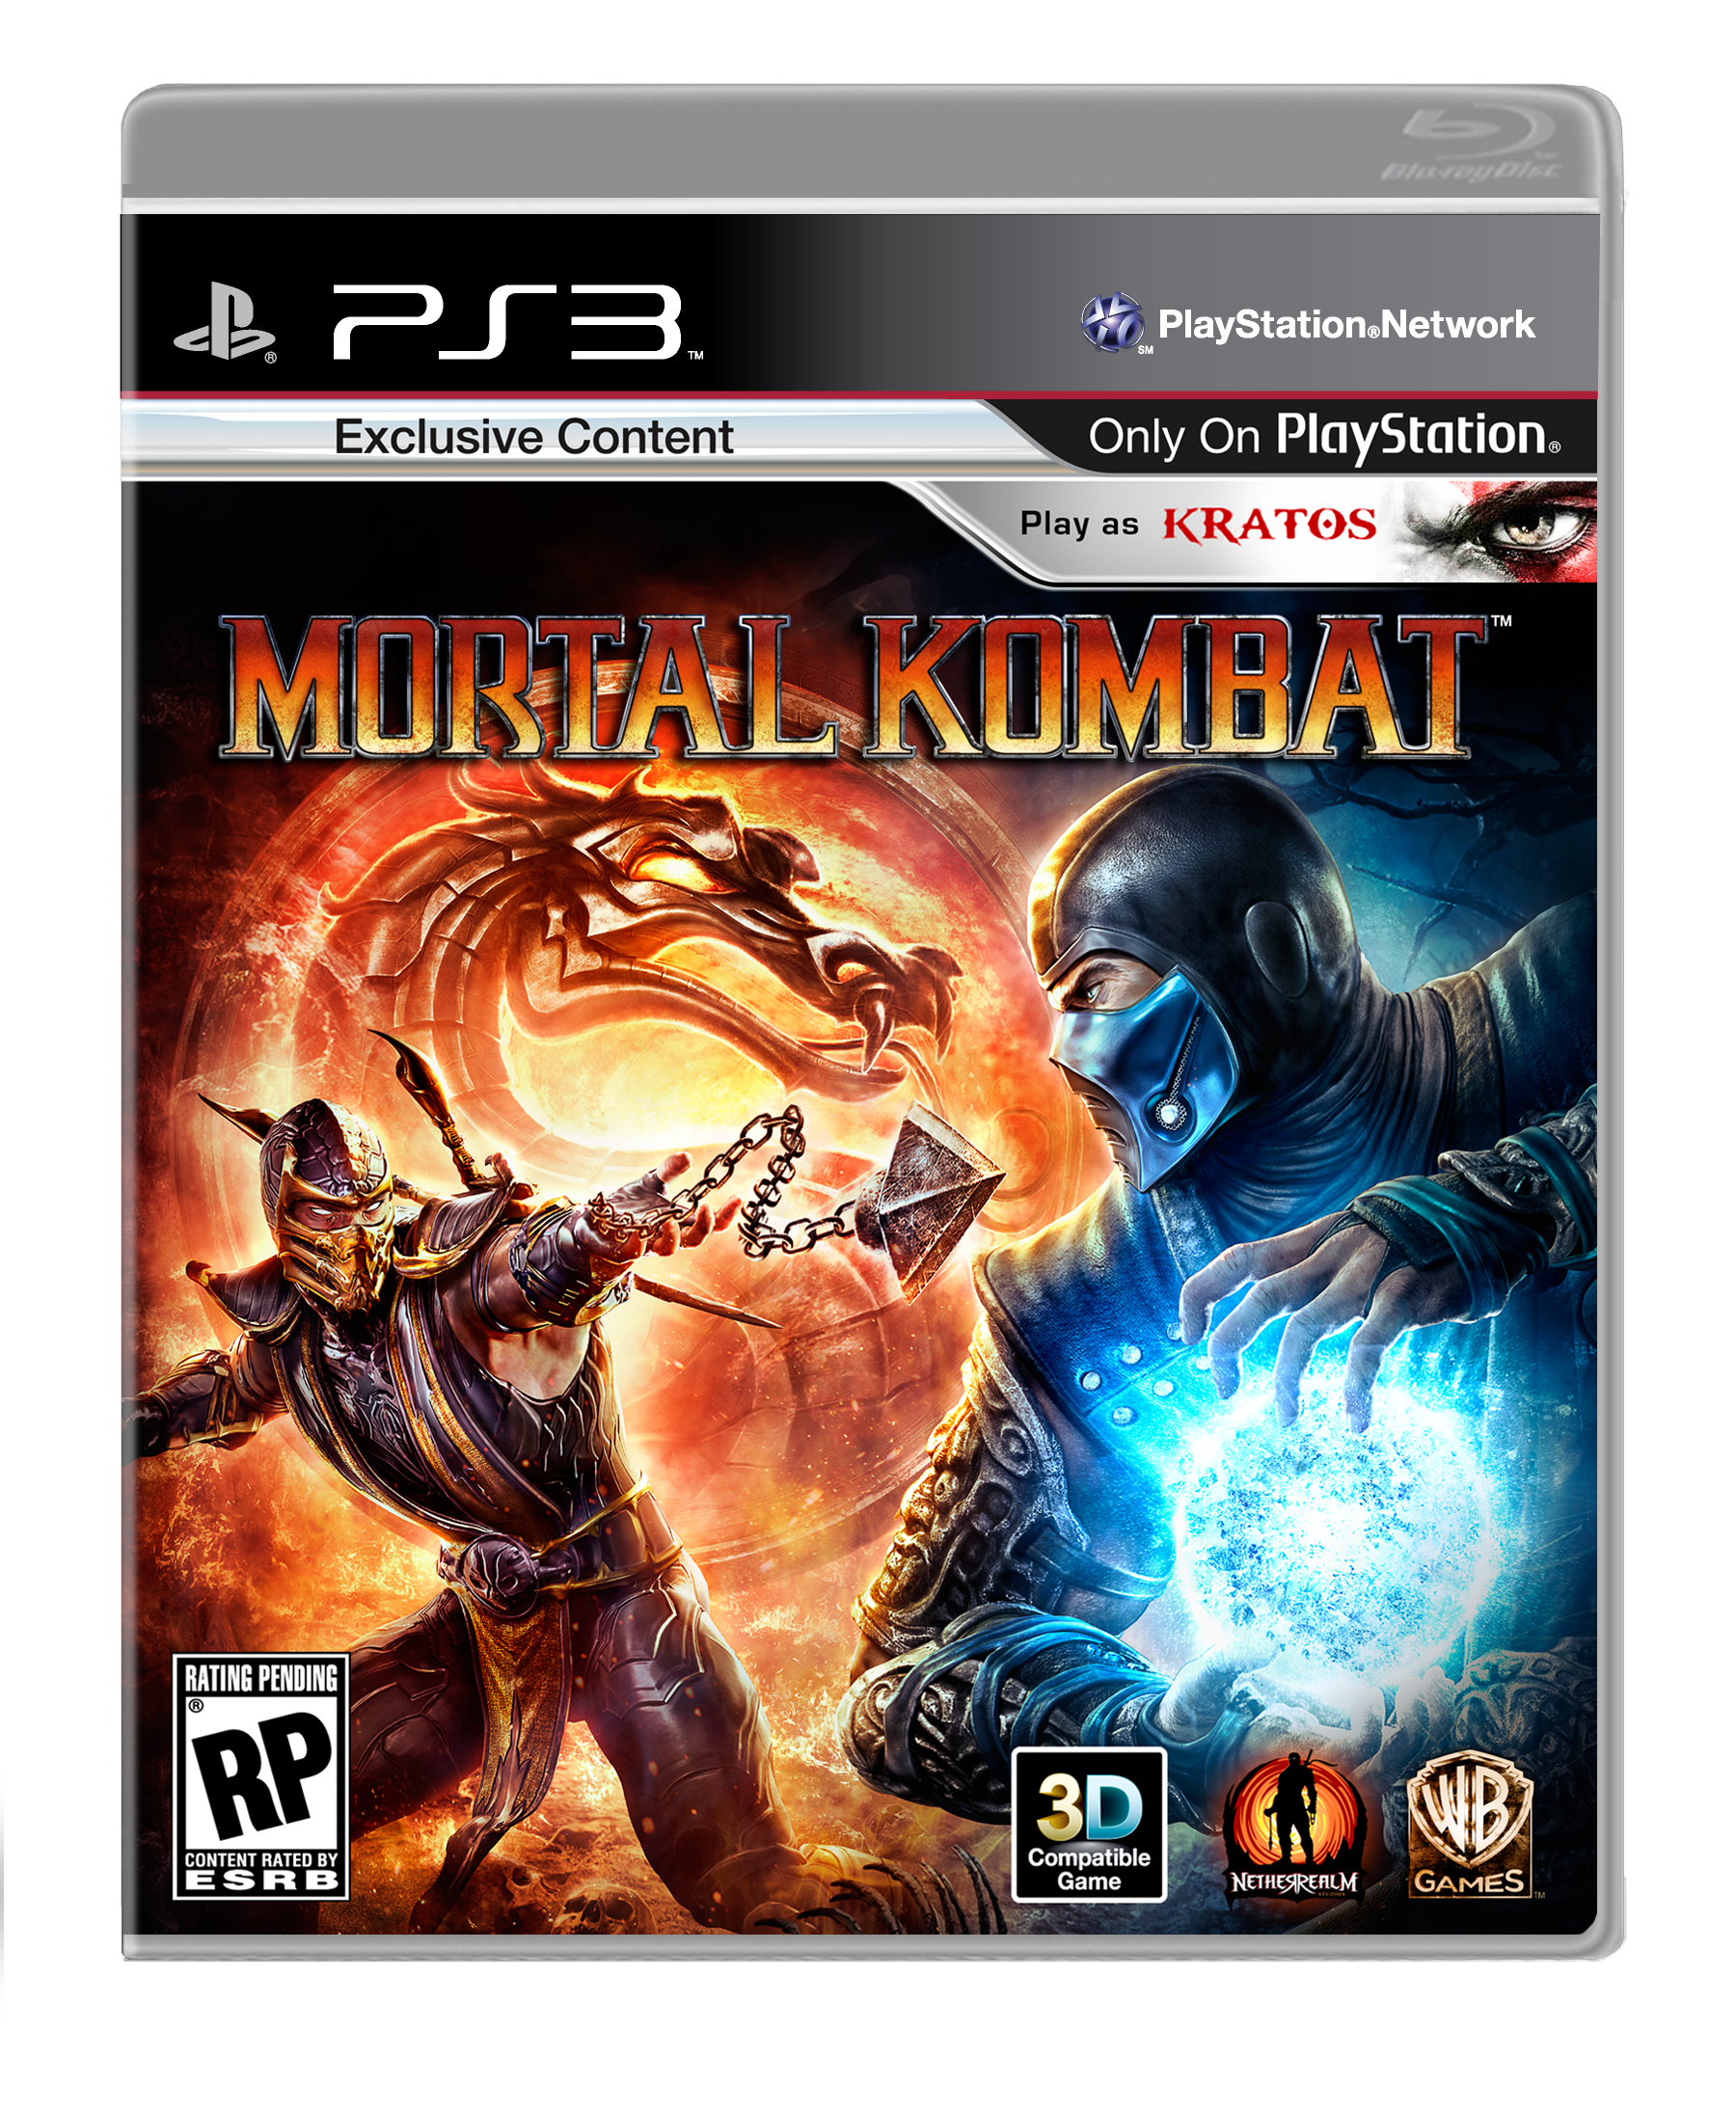 Mortal Kombat 9 Playstation Cover Box